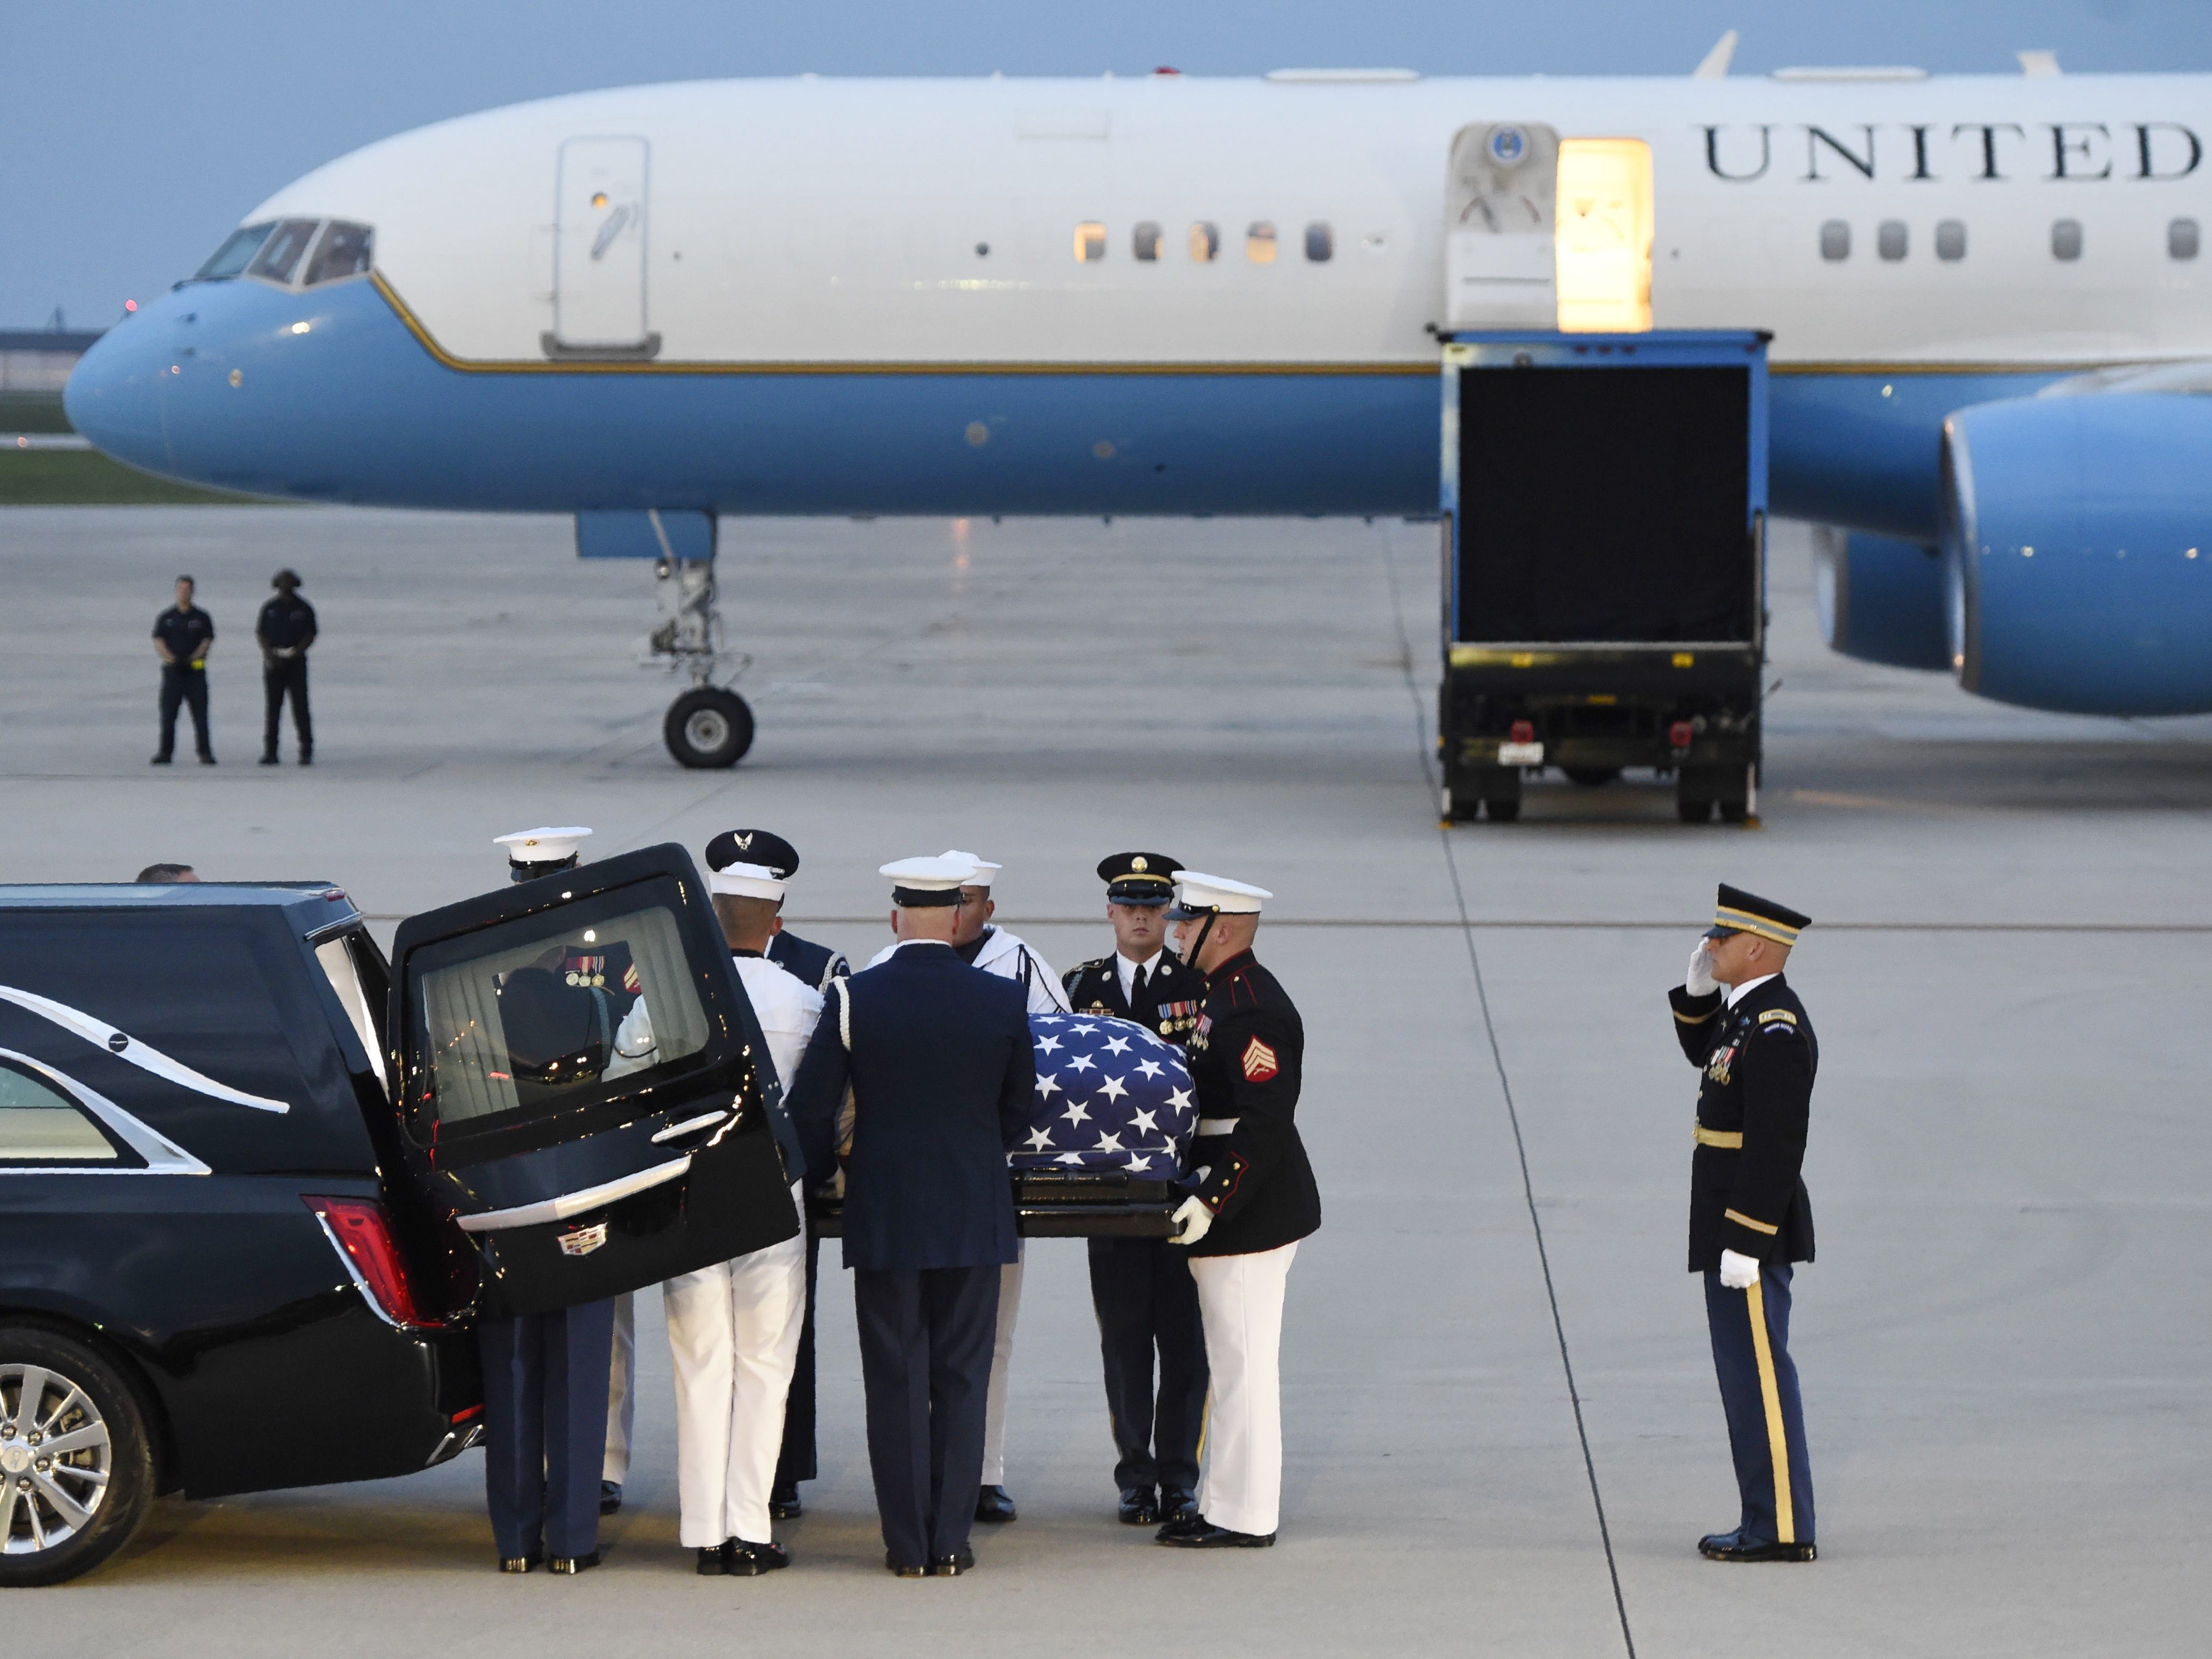 Members of the military carry the flag-draped casket of the late US Senator John McCain, Republican of Arizona, after arriving on a military airplane at Joint Base Andrews in Maryland, August 30, 2018. (Photo by SAUL LOEB / AFP)SAUL LOEB/AFP/Getty Images ORG XMIT: Senator J ORIG FILE ID: AFP_18Q463